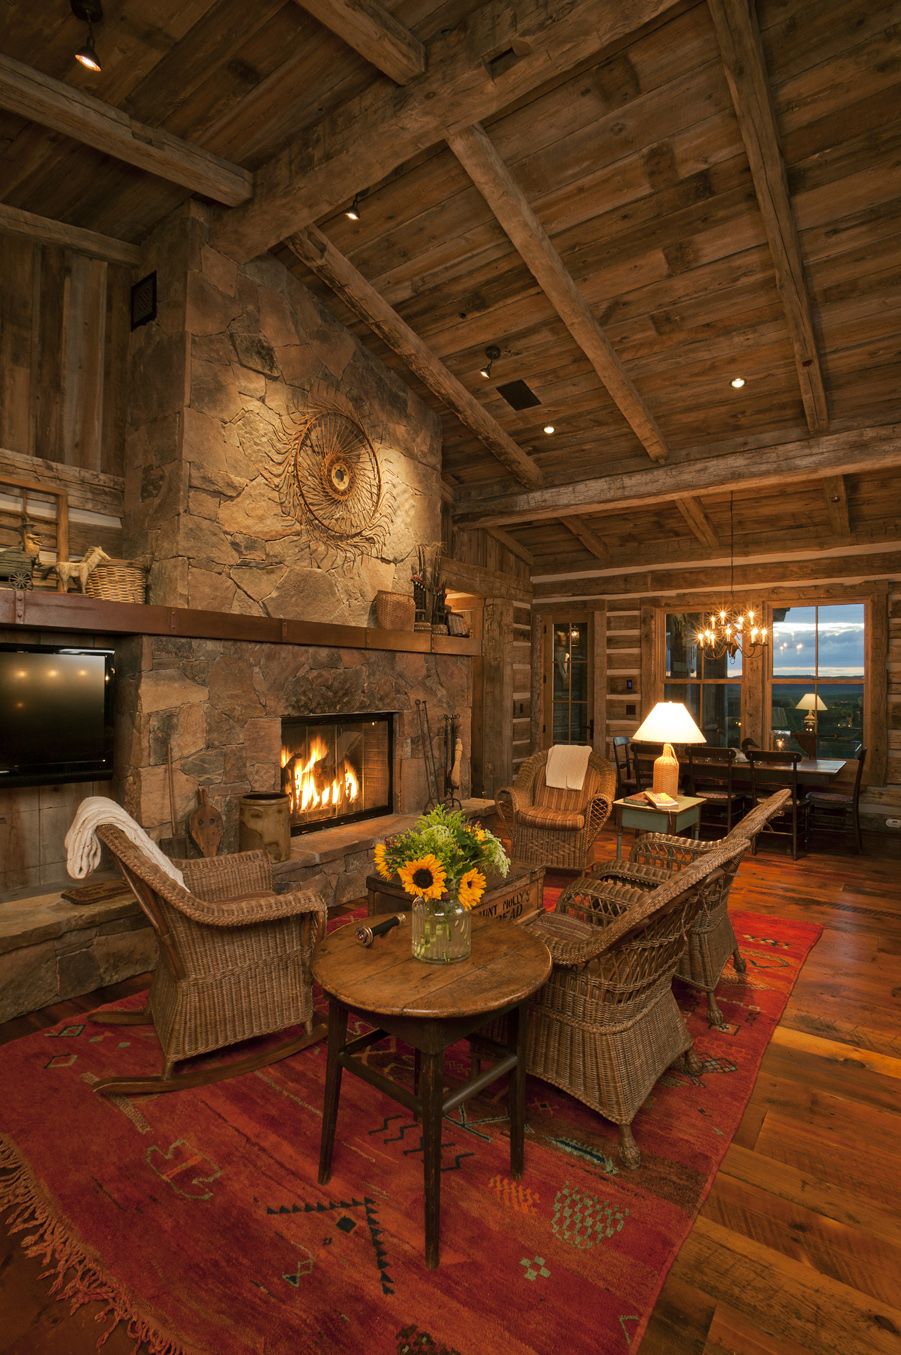 Western Interior Design Ideas western interior design ideas western decorating ideas home new ranch house interior designs Home